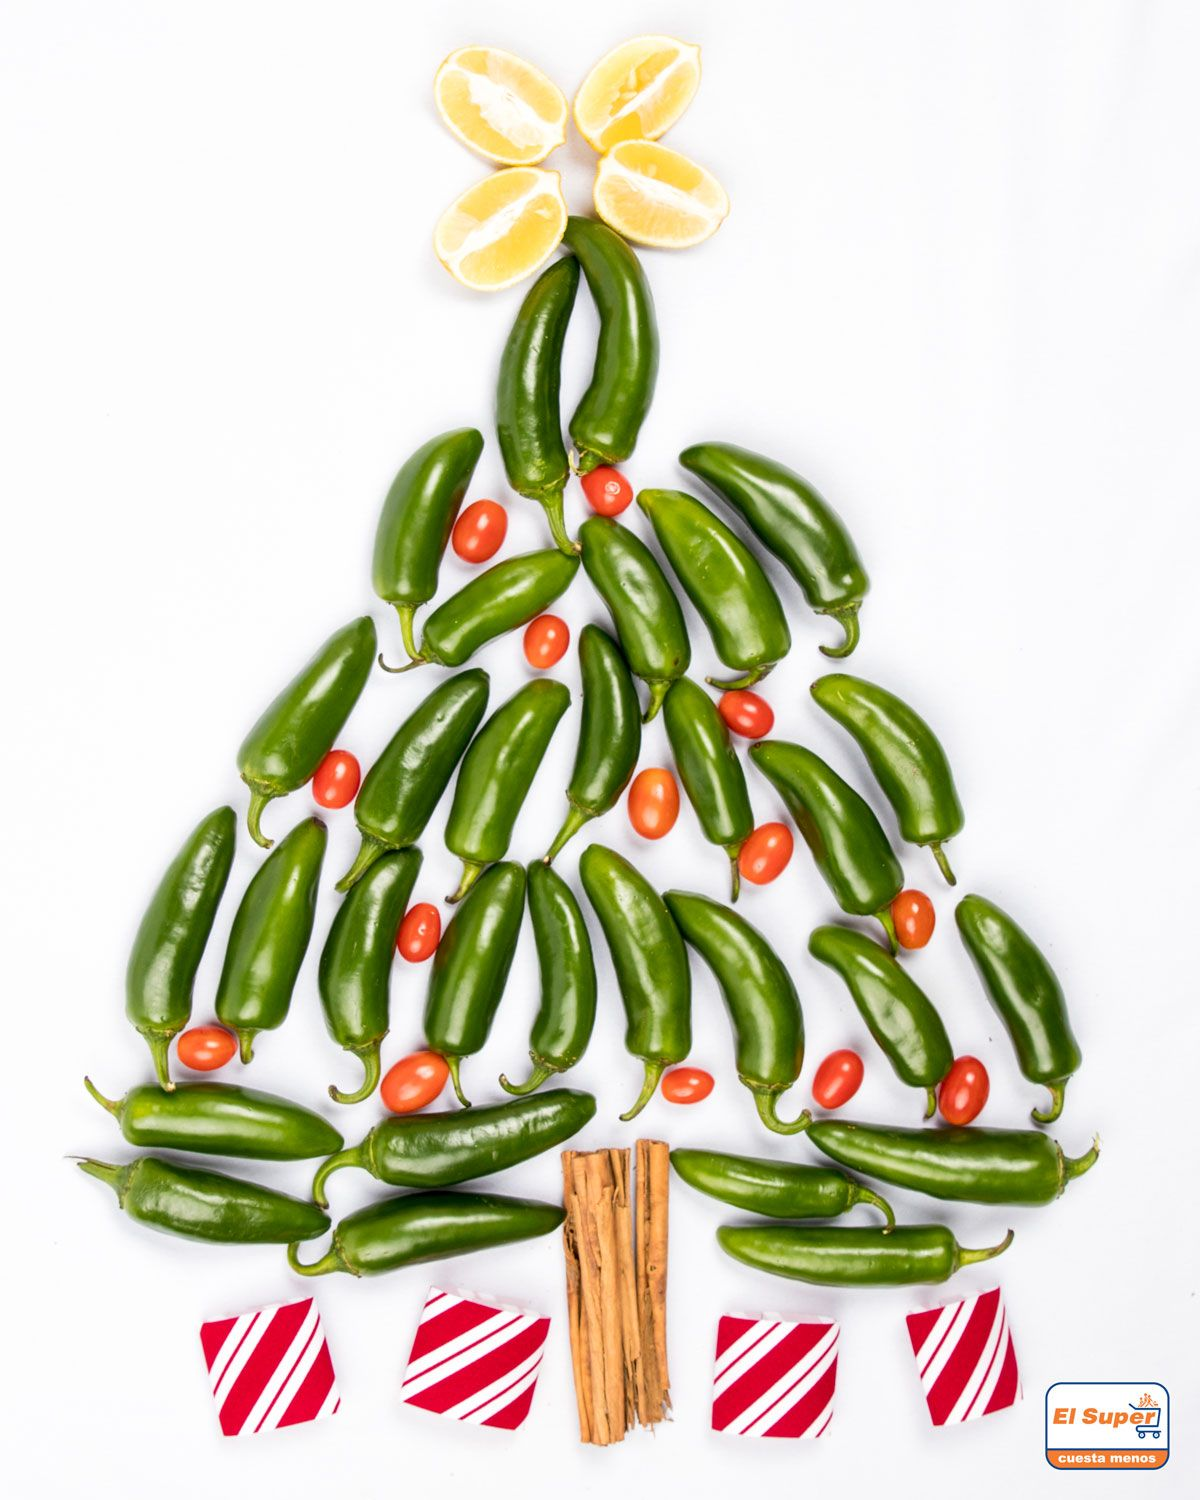 Happy Holidays Inspiration: Oh Produce Tree Oh Produce Tree 🎶 Merry Christmas